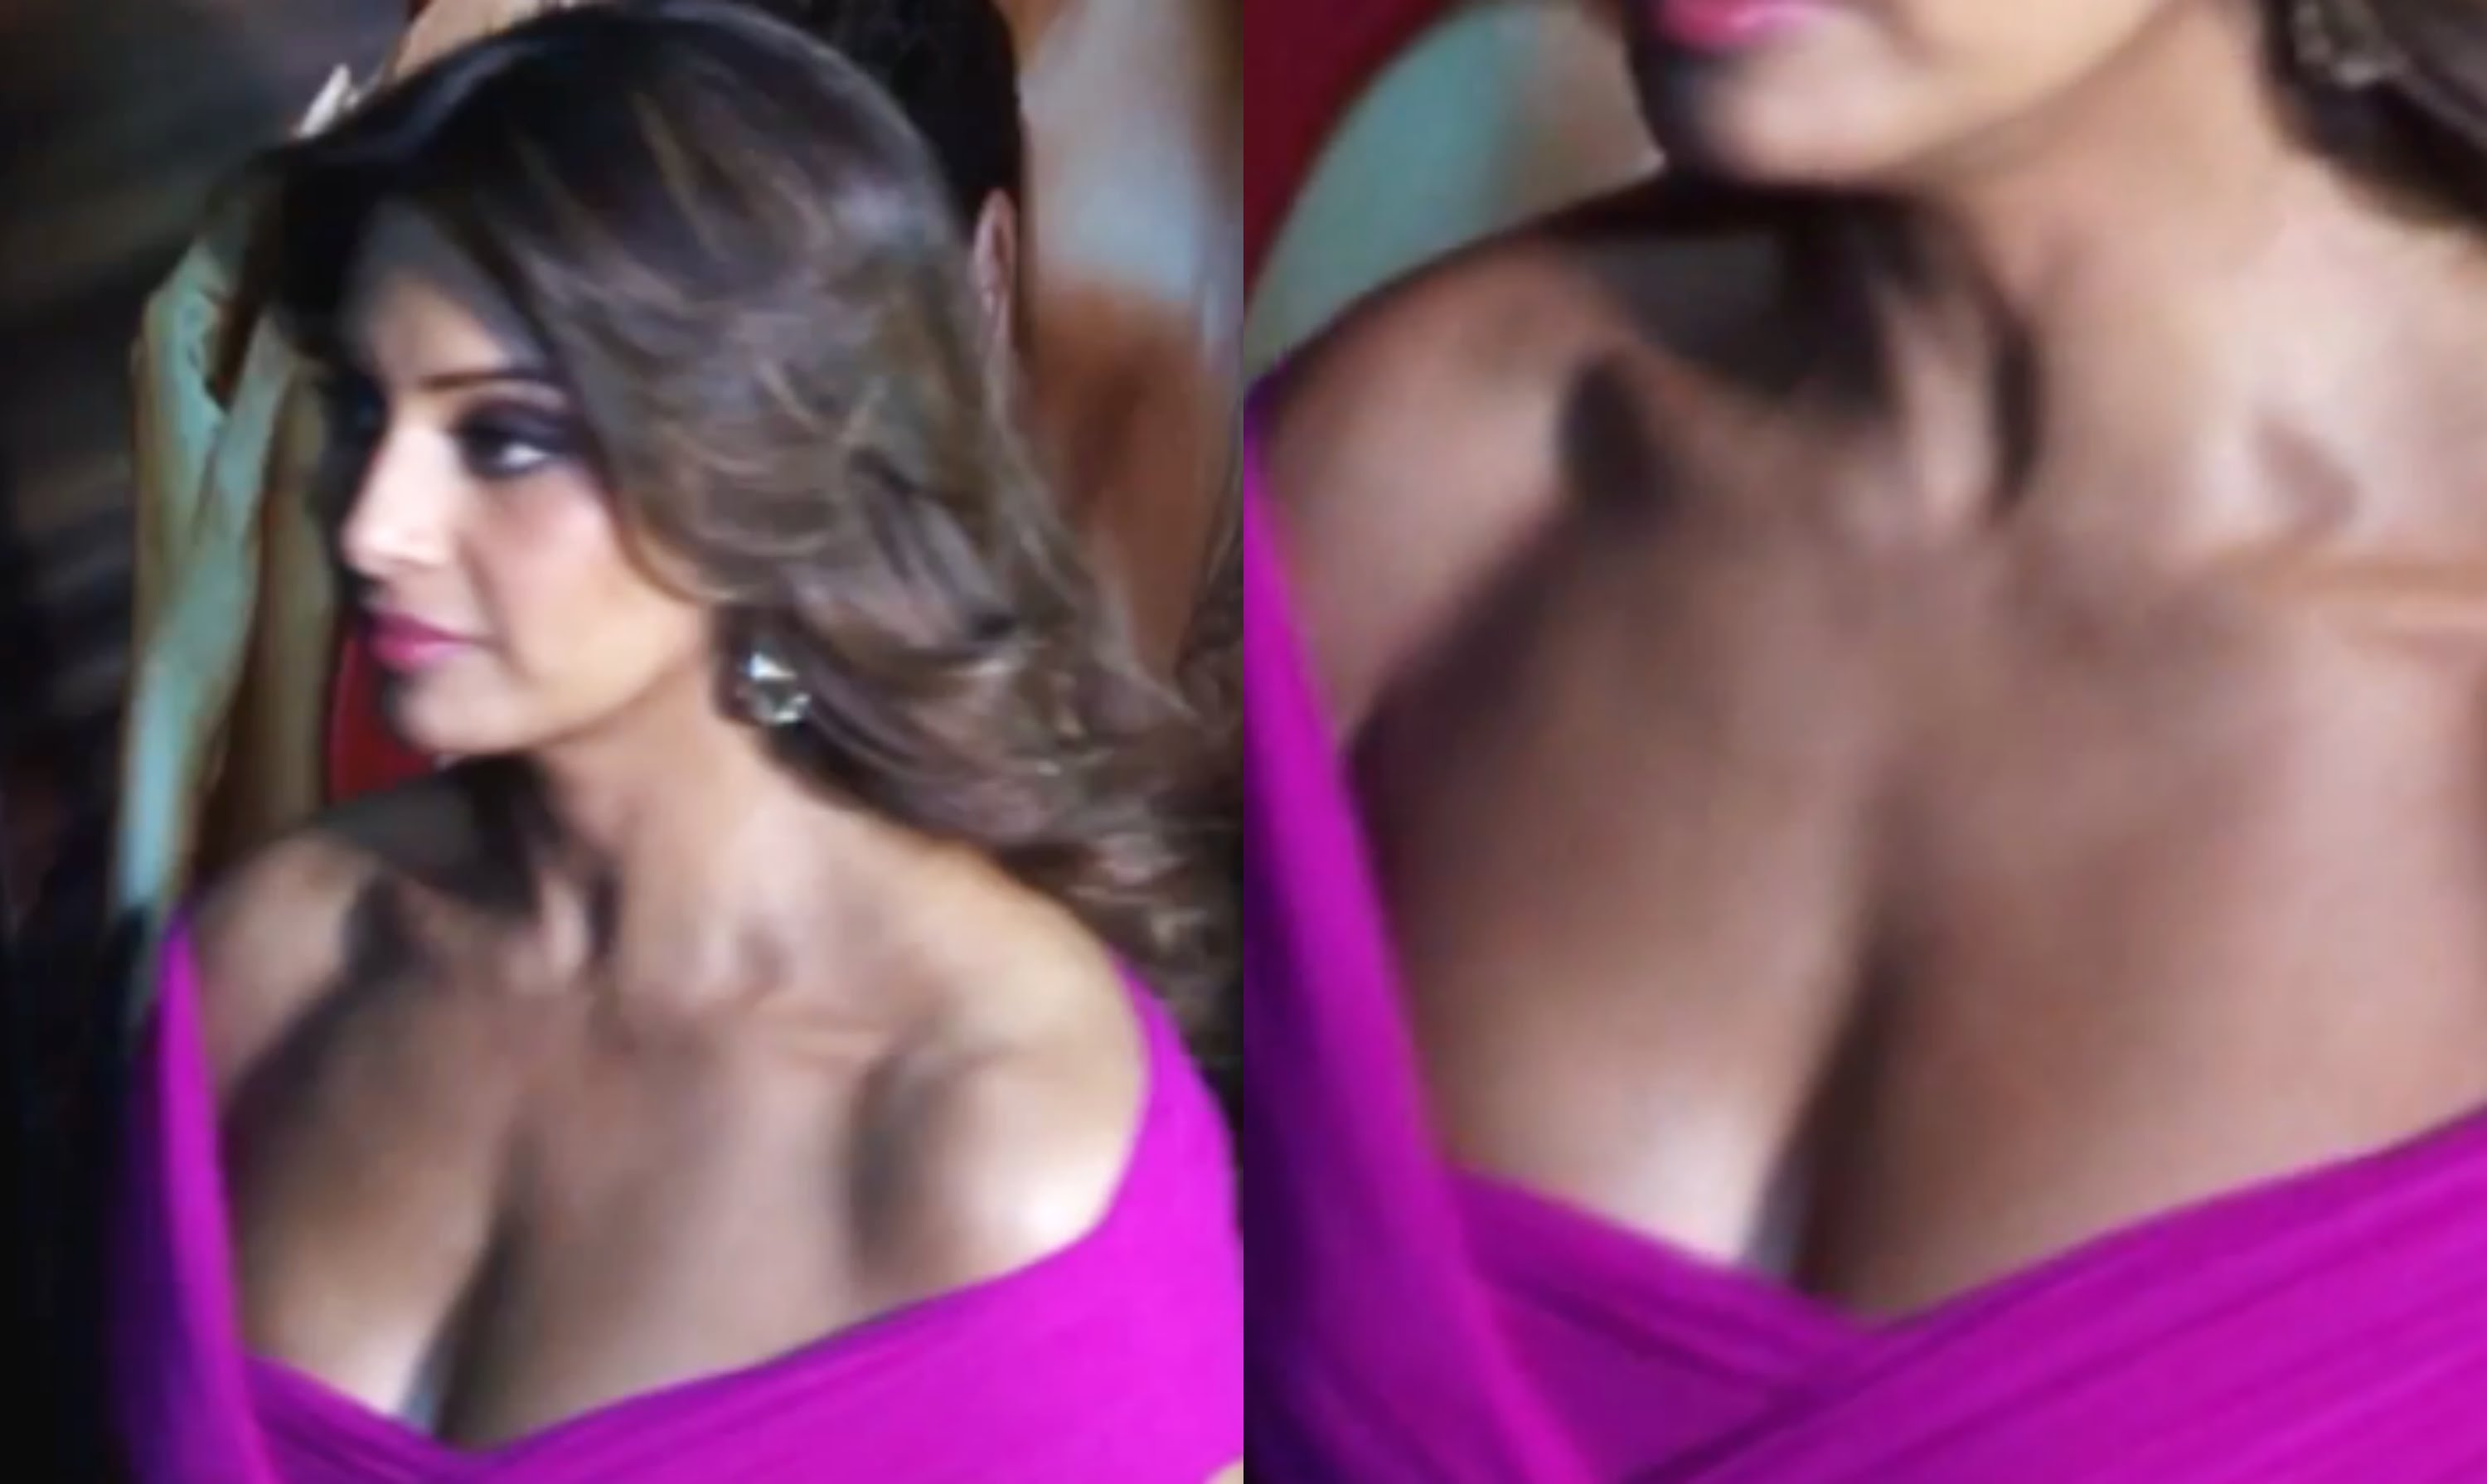 Bipasa Basunude Good bipasha basu nude boobs nipples sex porn topless - drmerz